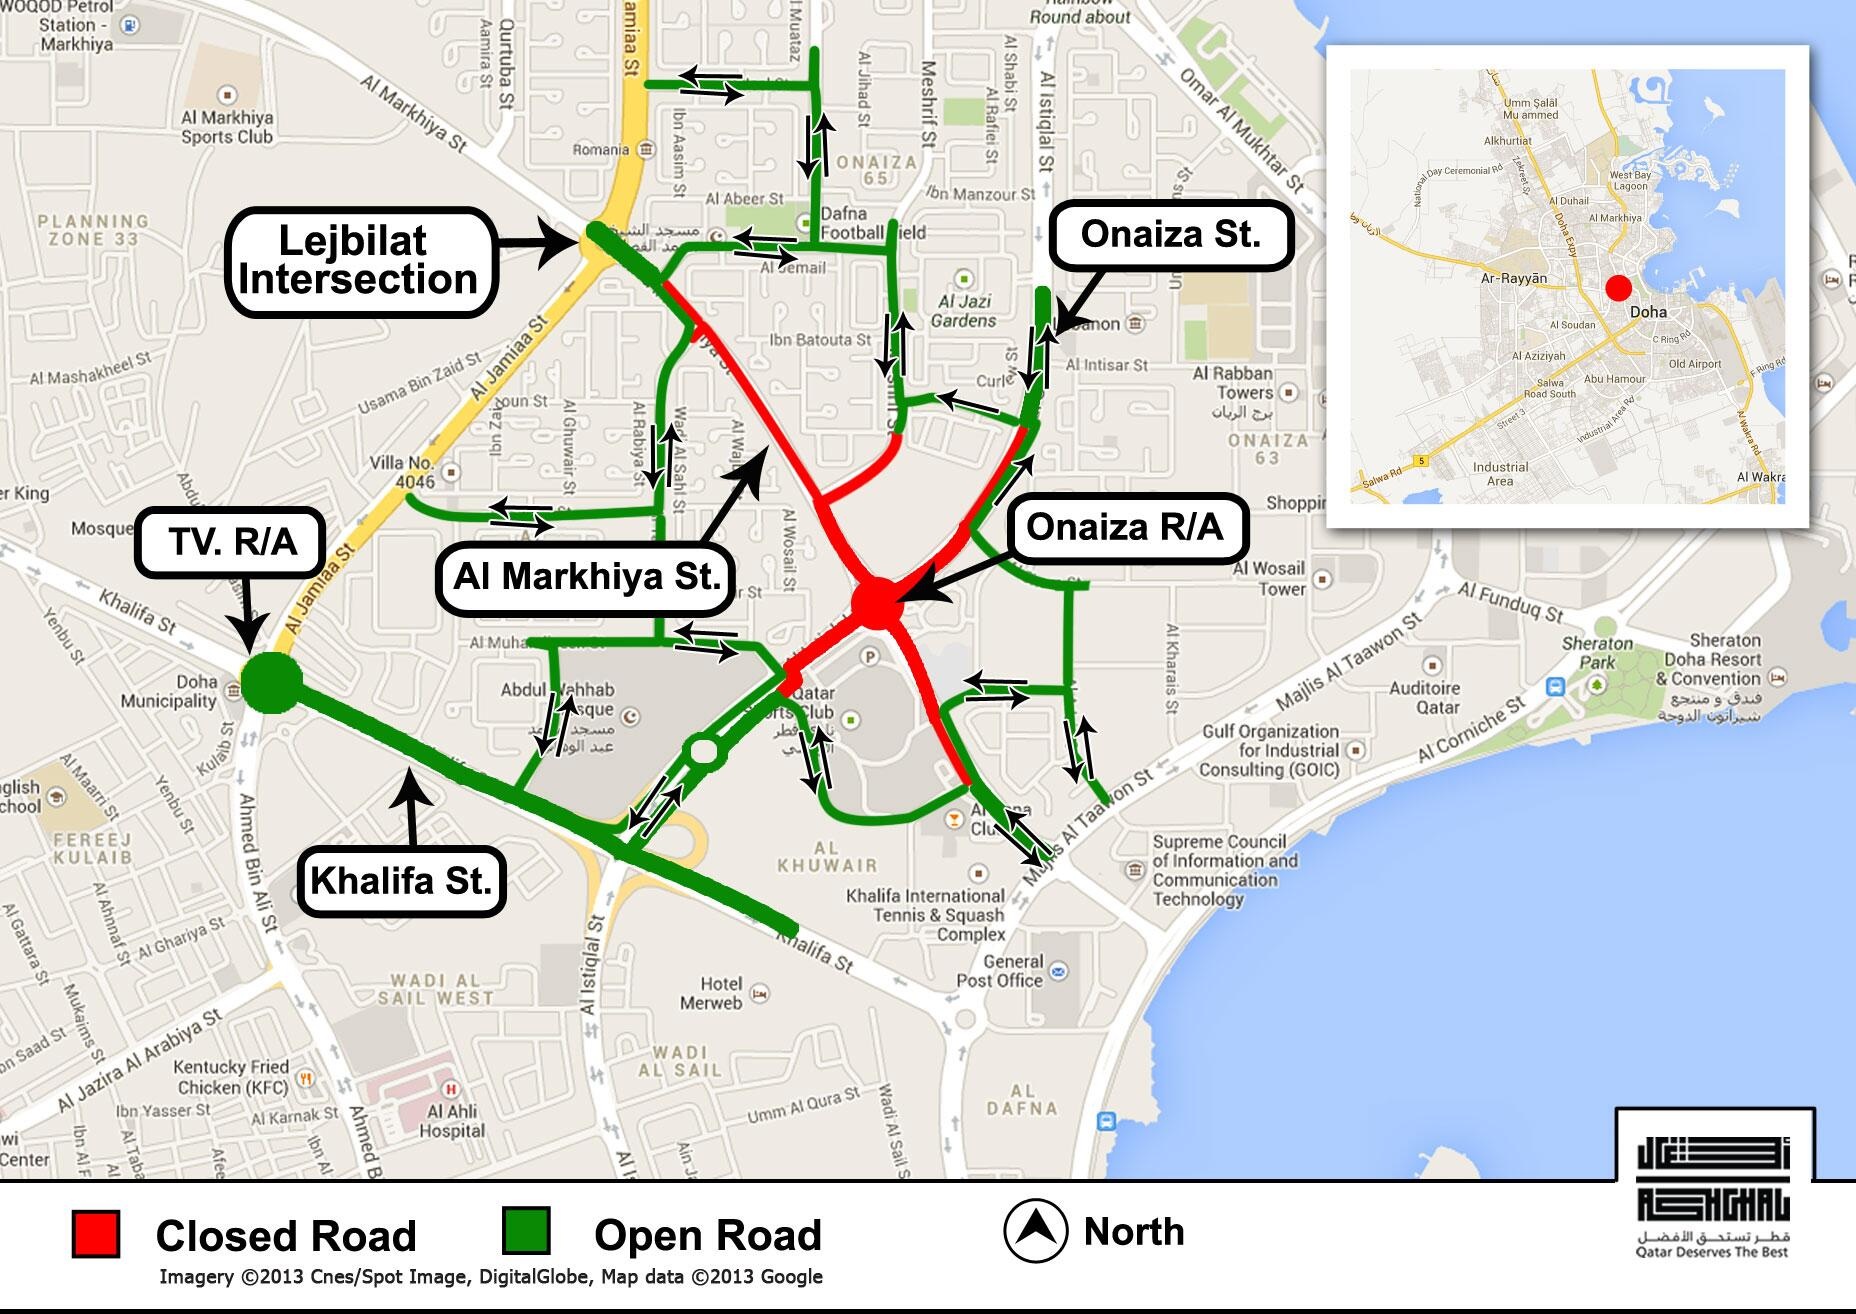 RT @AshghalQatar: As of Sunday Nov 10th traffic at Onaiza R/A will be diverted to the roads highlighted in green on the attached map http://t.co/7wQXTimc3M